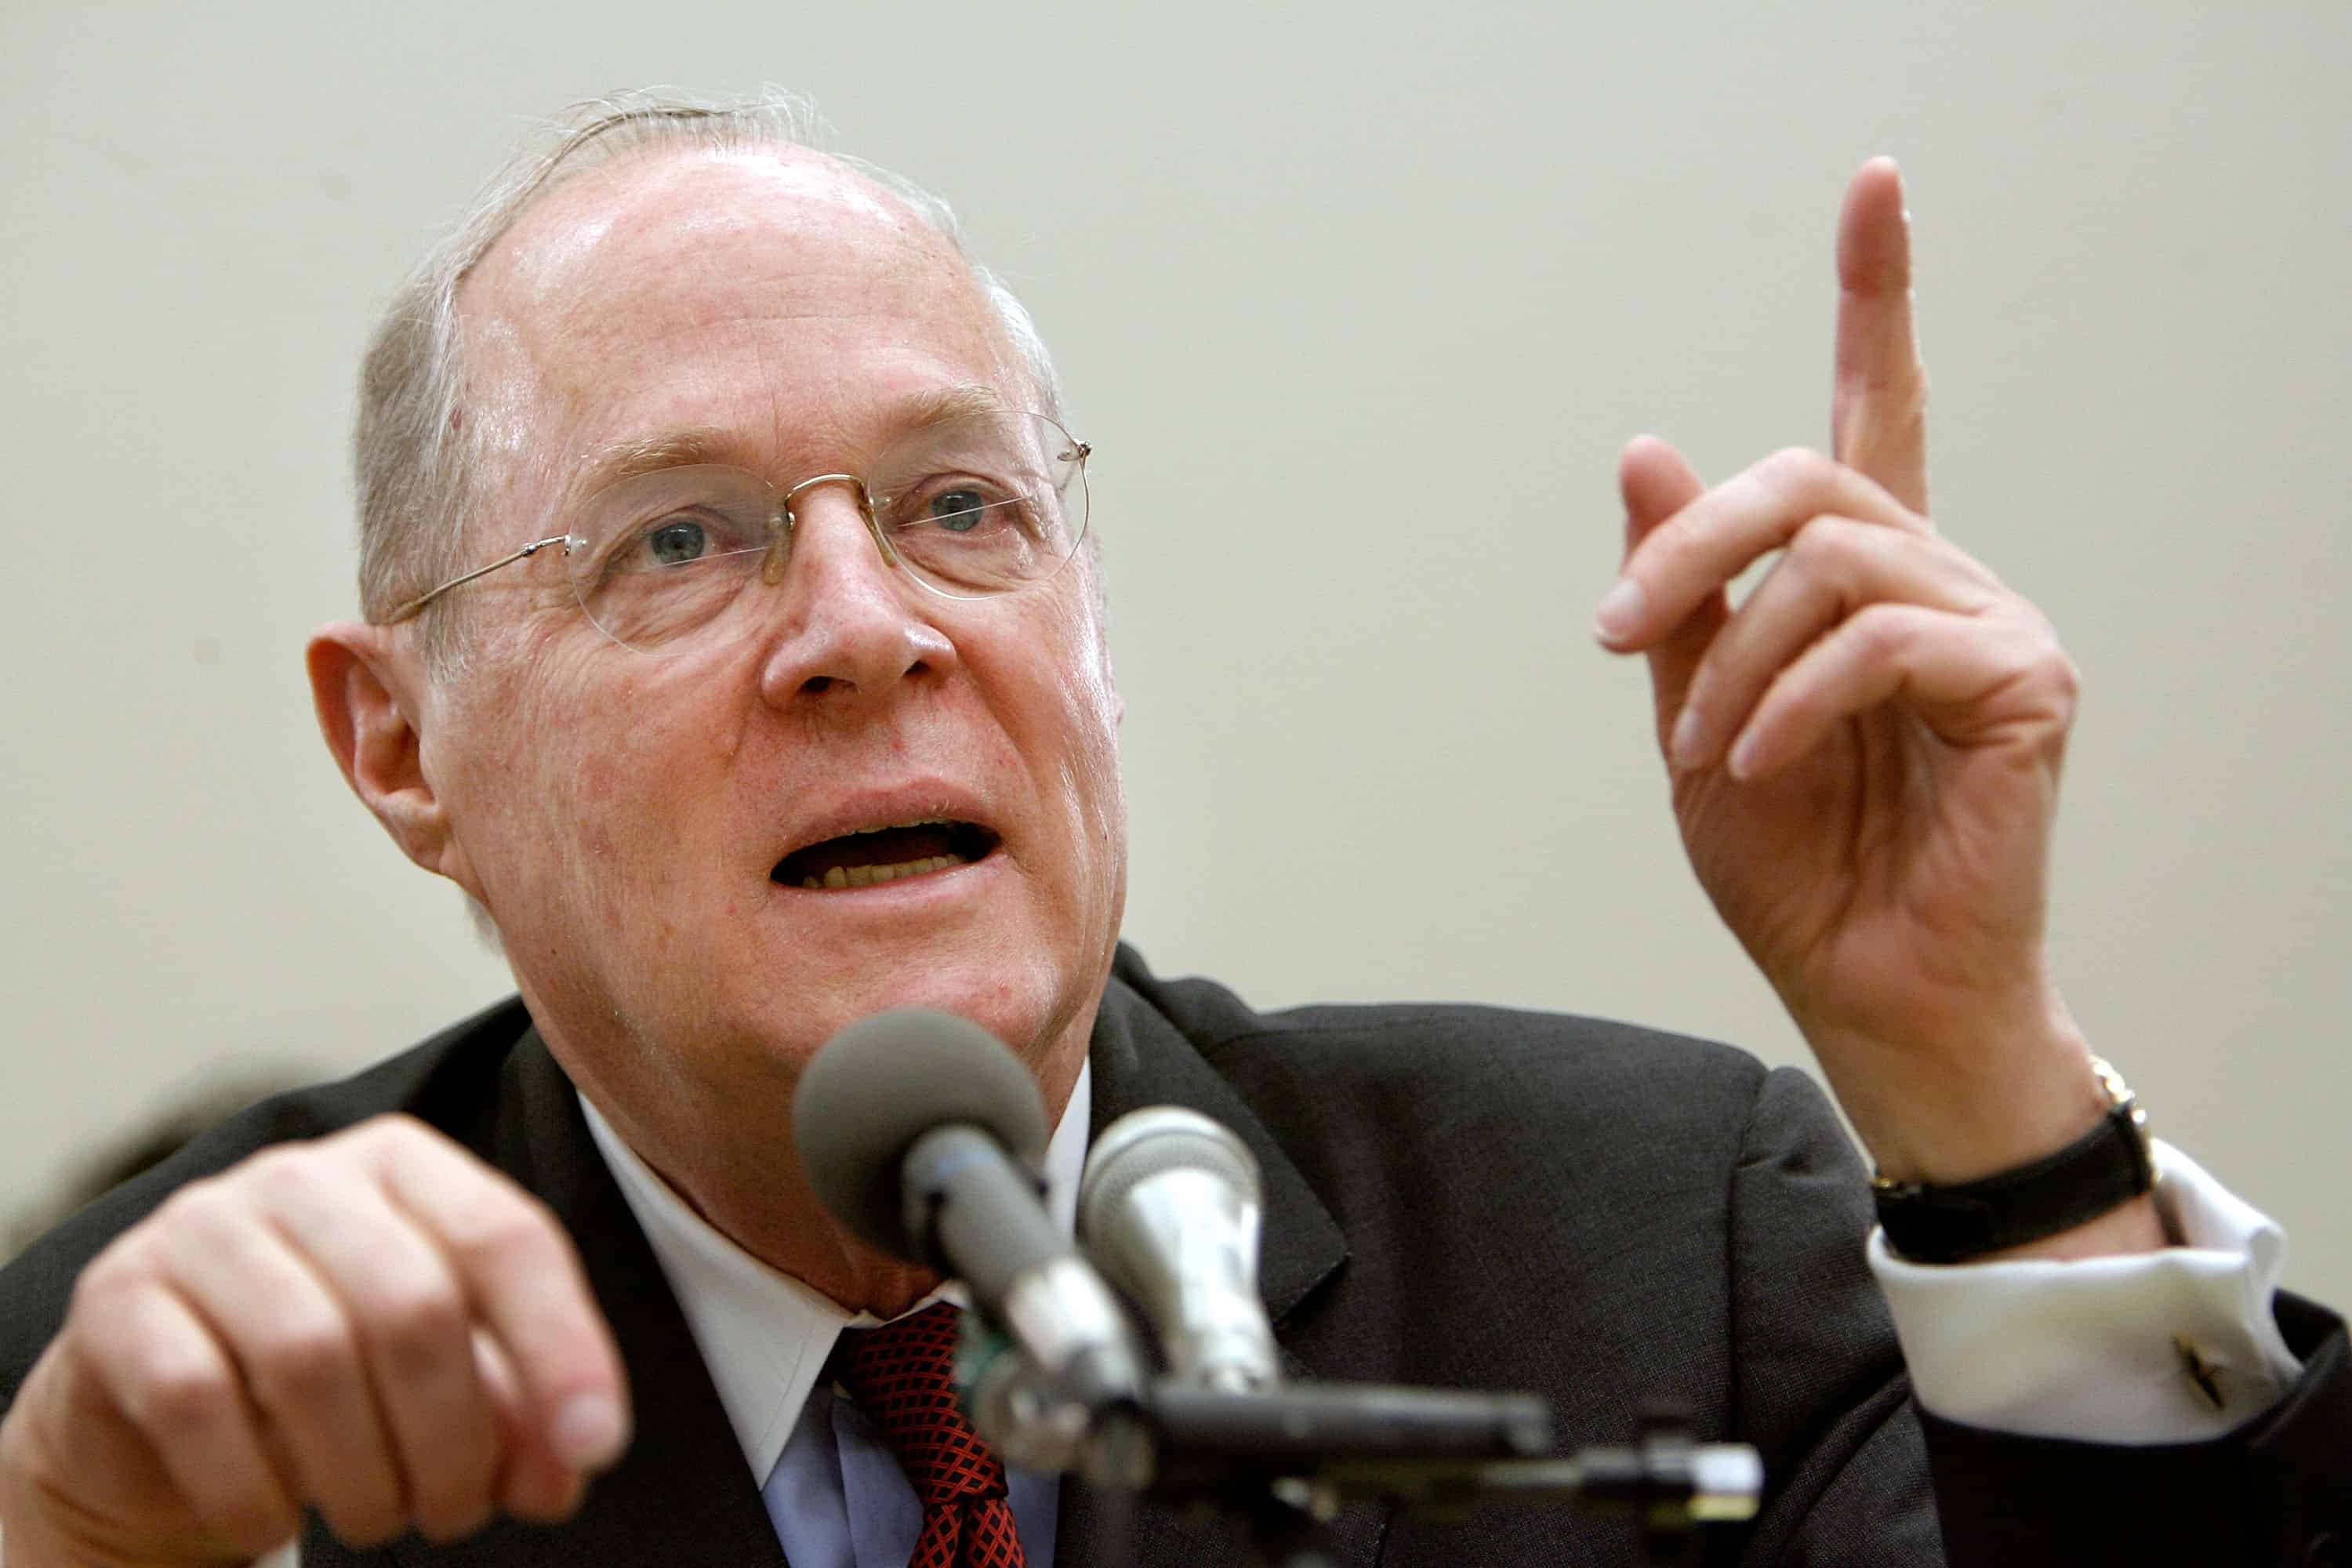 U.S. Supreme Court Justice Anthony Kennedy.